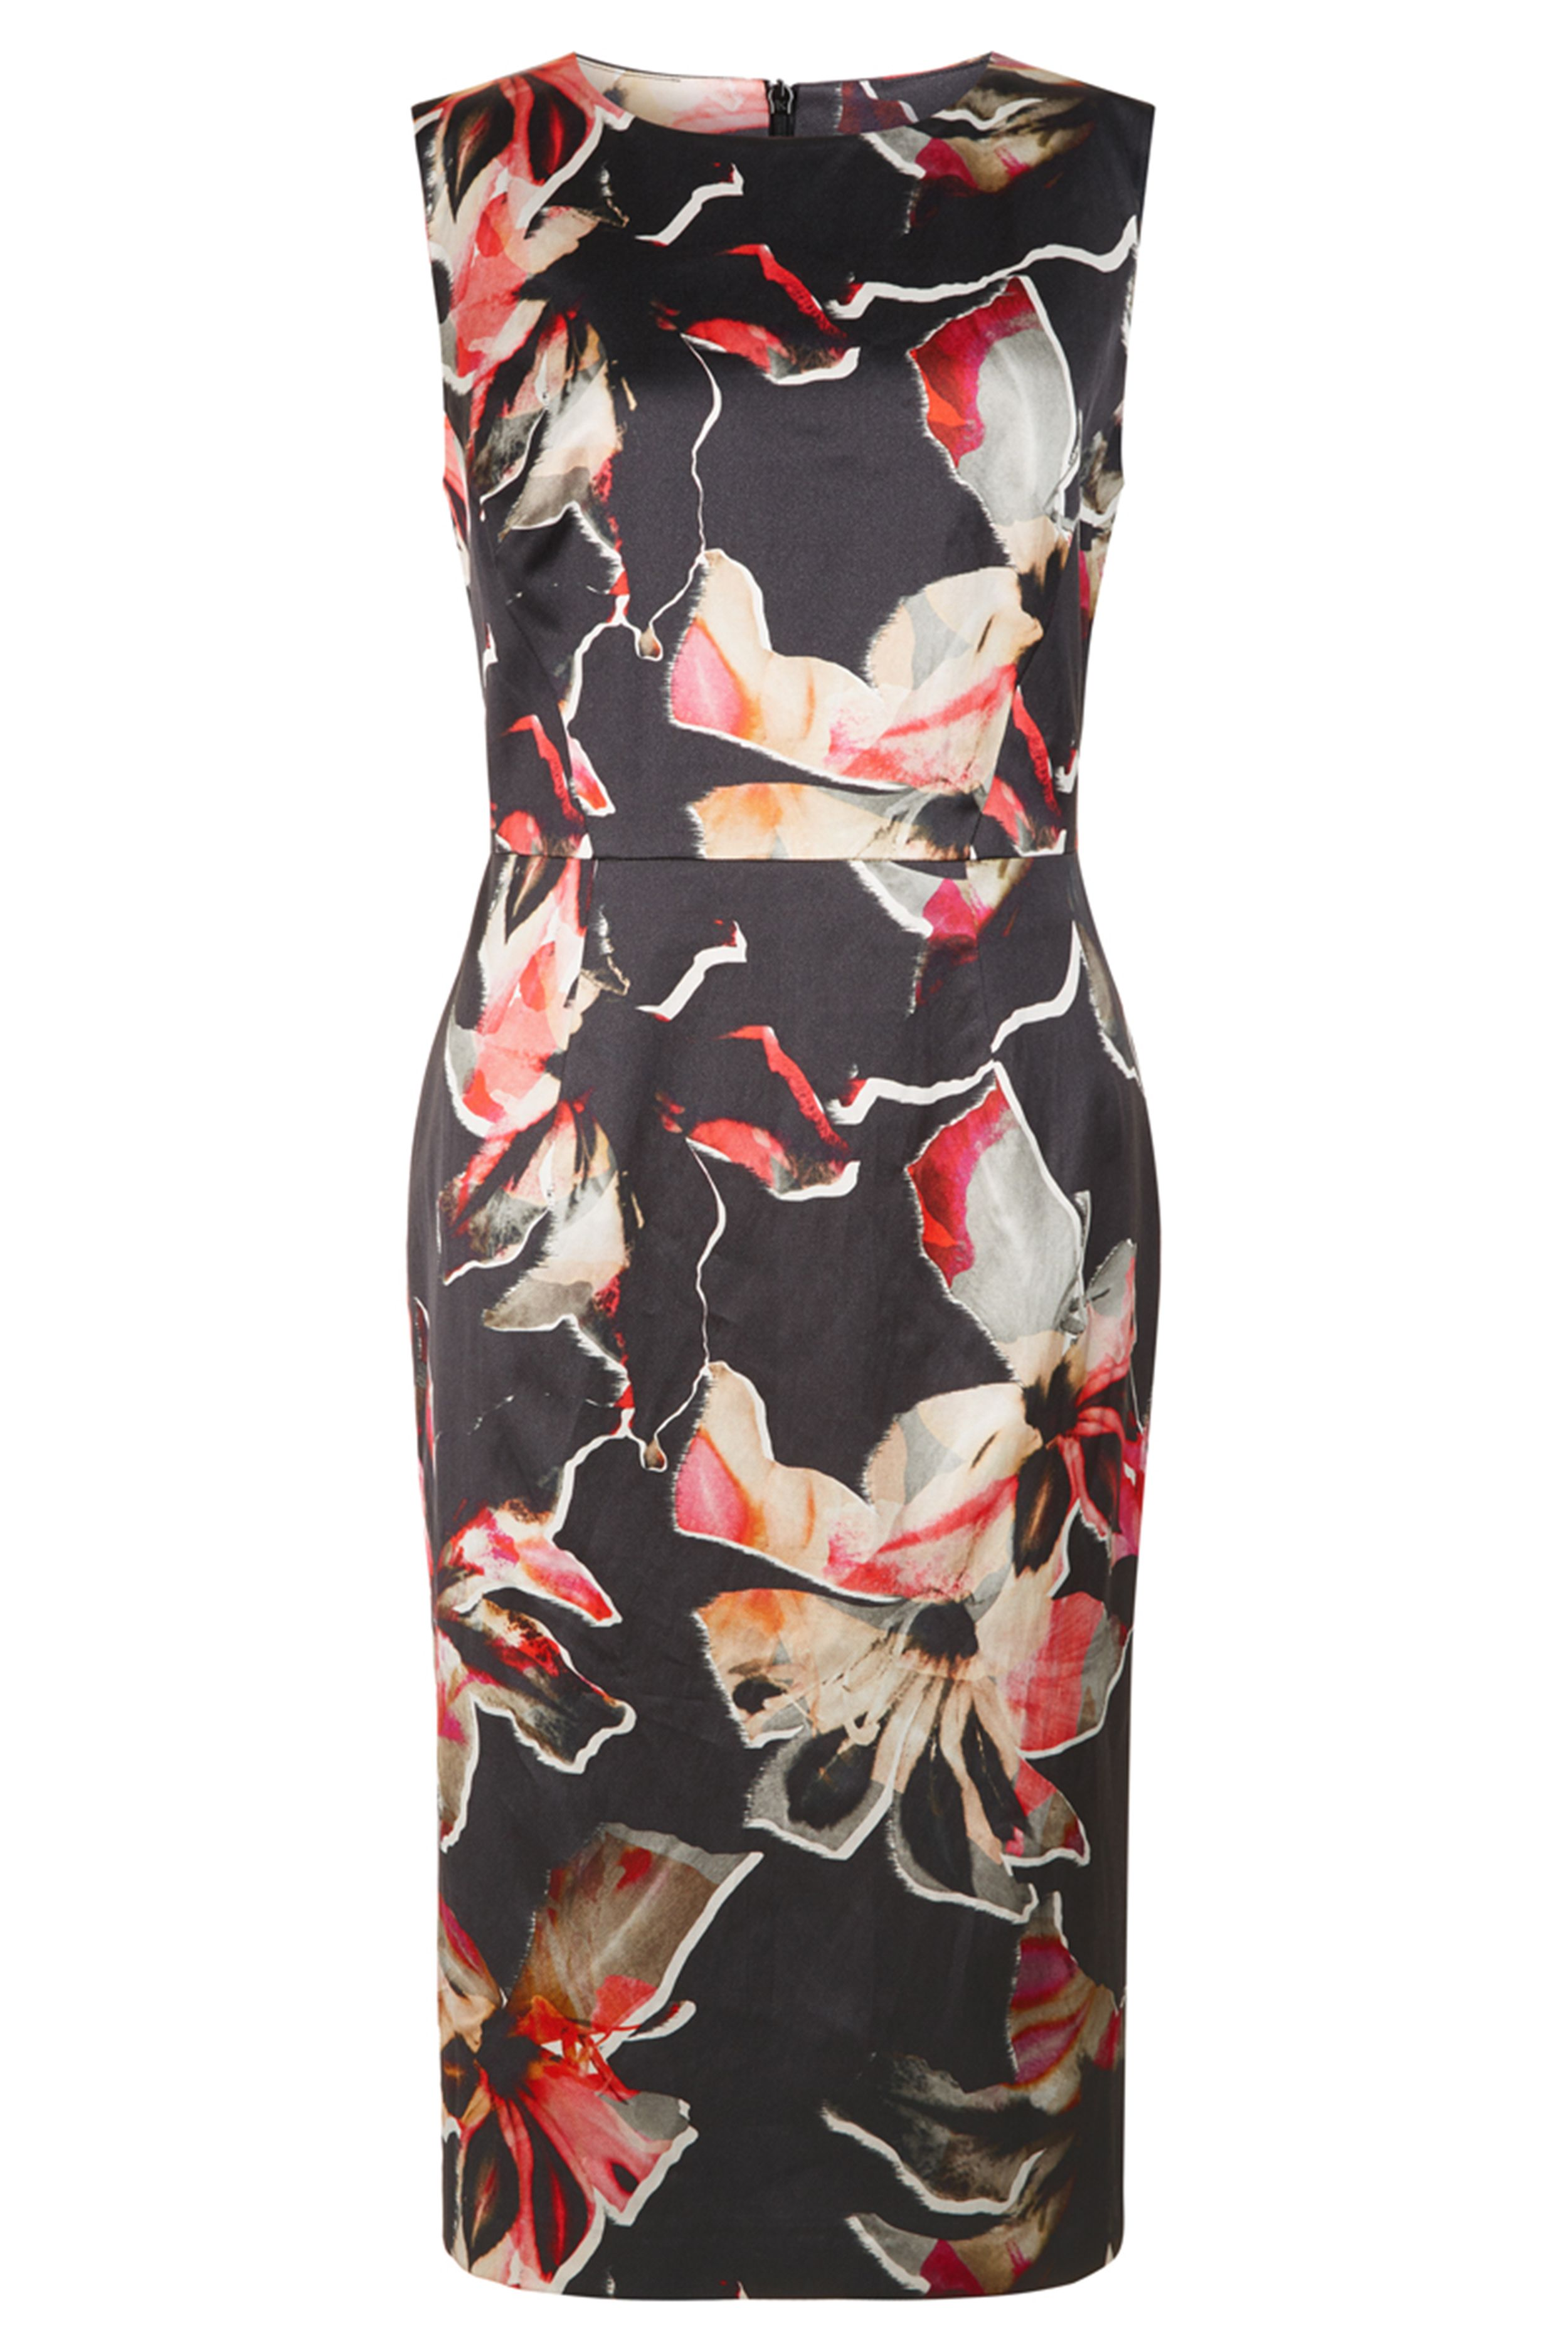 Fenn Wright Manson Horizon Dress, Multi-Coloured